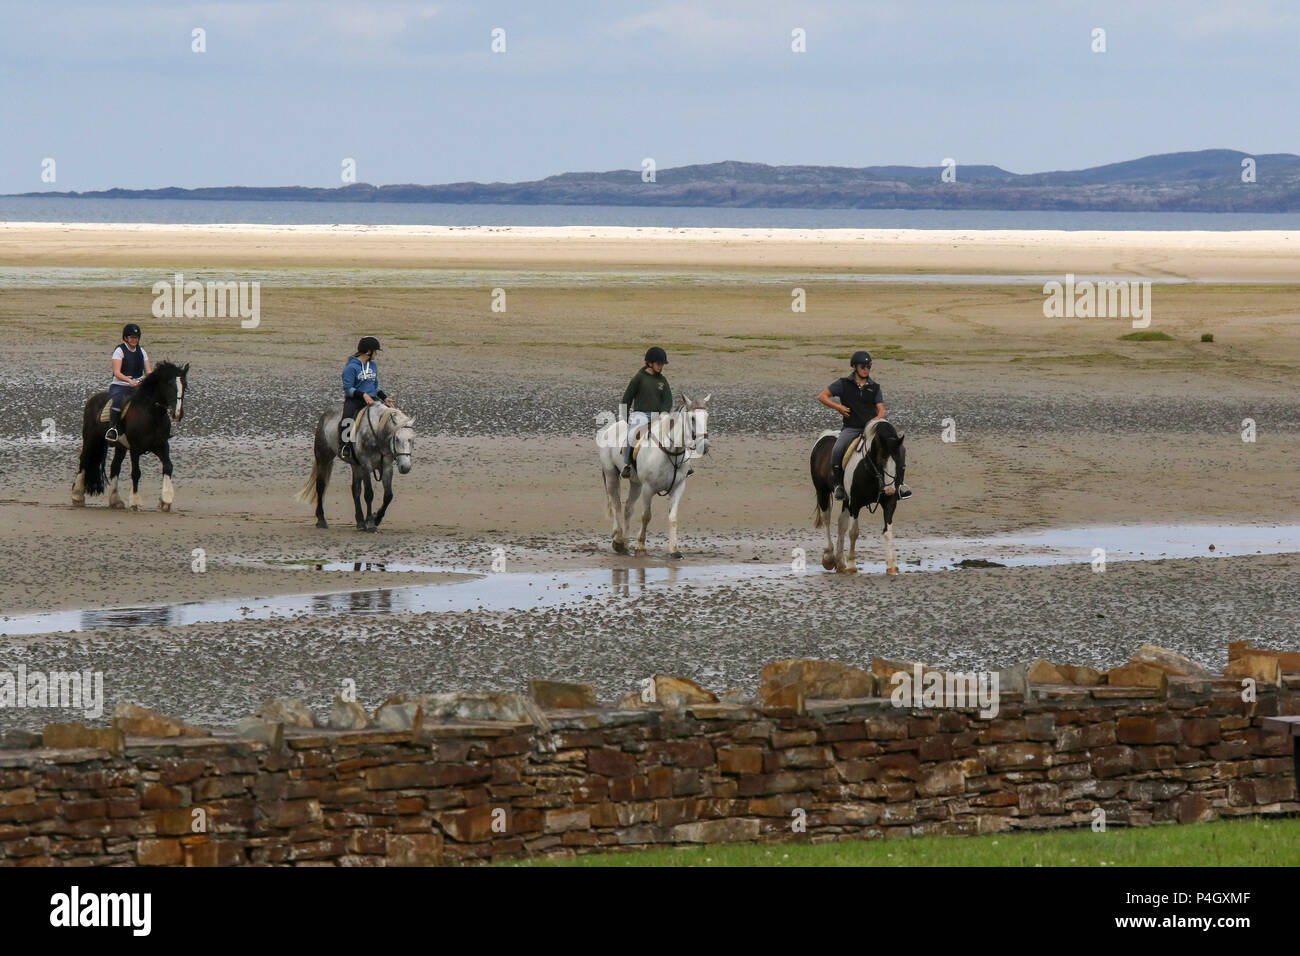 Riding school on a sandy beach in Ireland at Dunfanaghy County Donegal. - Stock Image